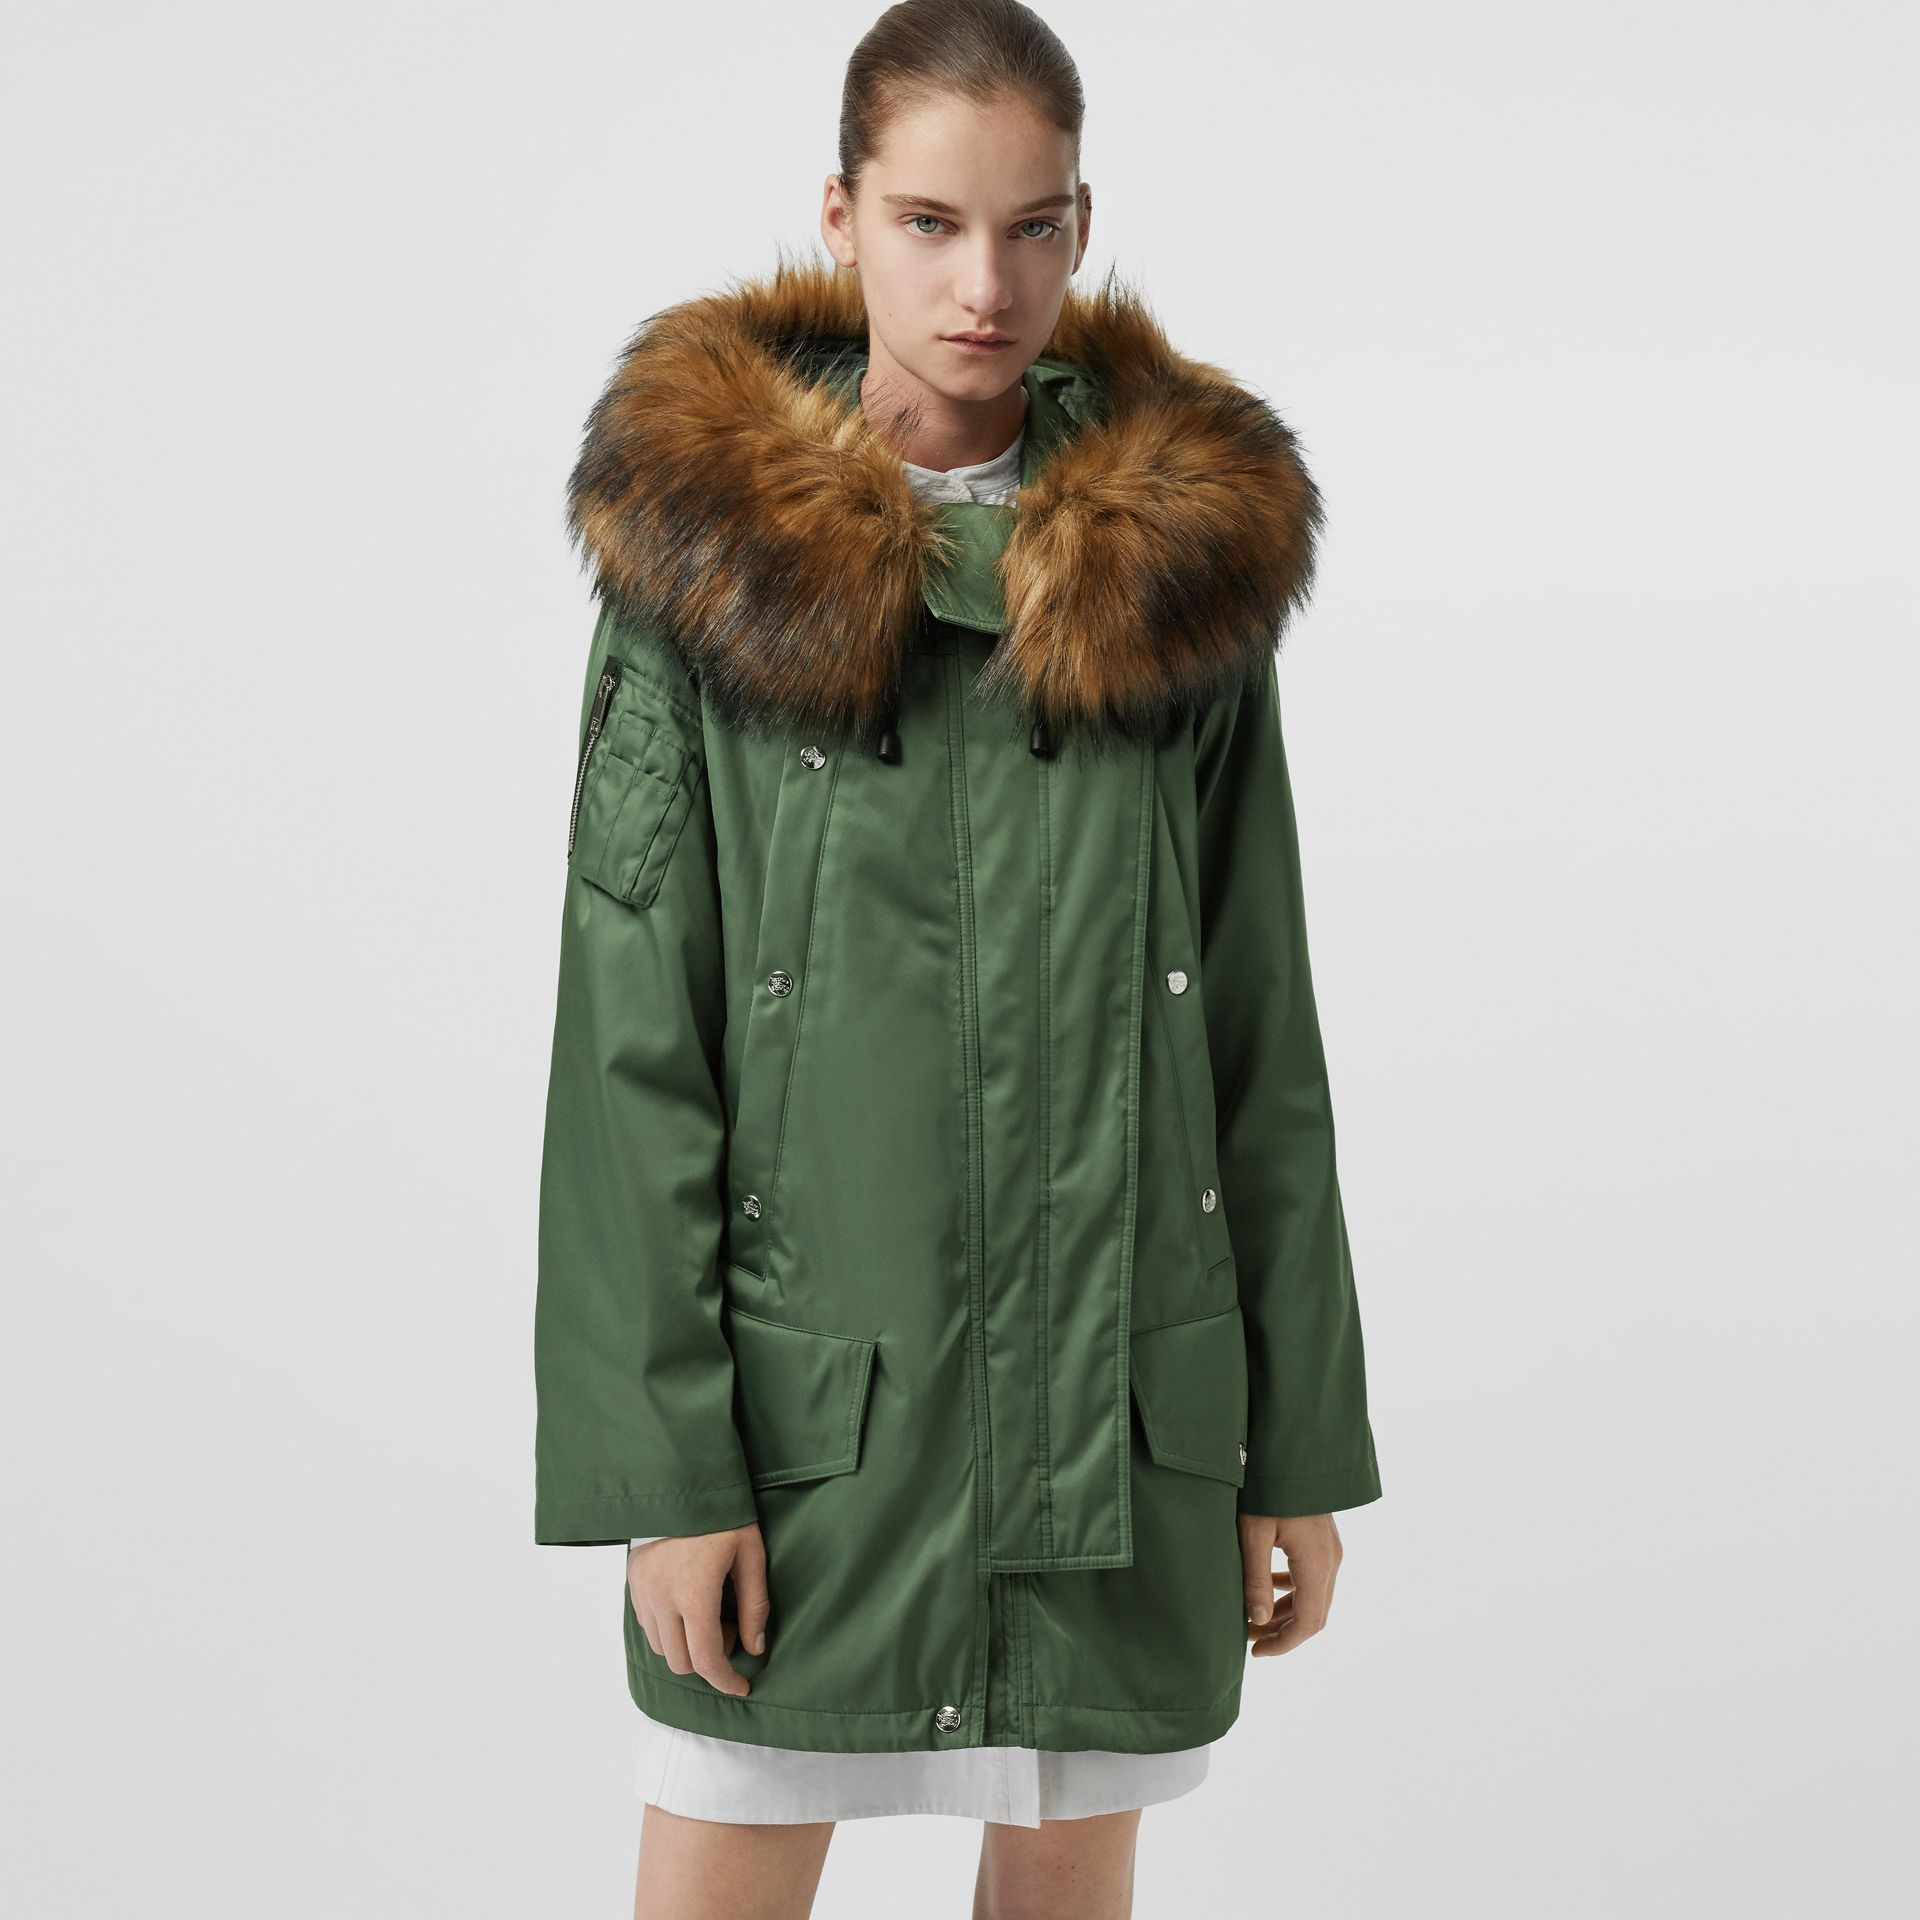 Faux Fur Trim Parka with Detachable Warmer in Grass Green - Women | Burberry - gallery image 4